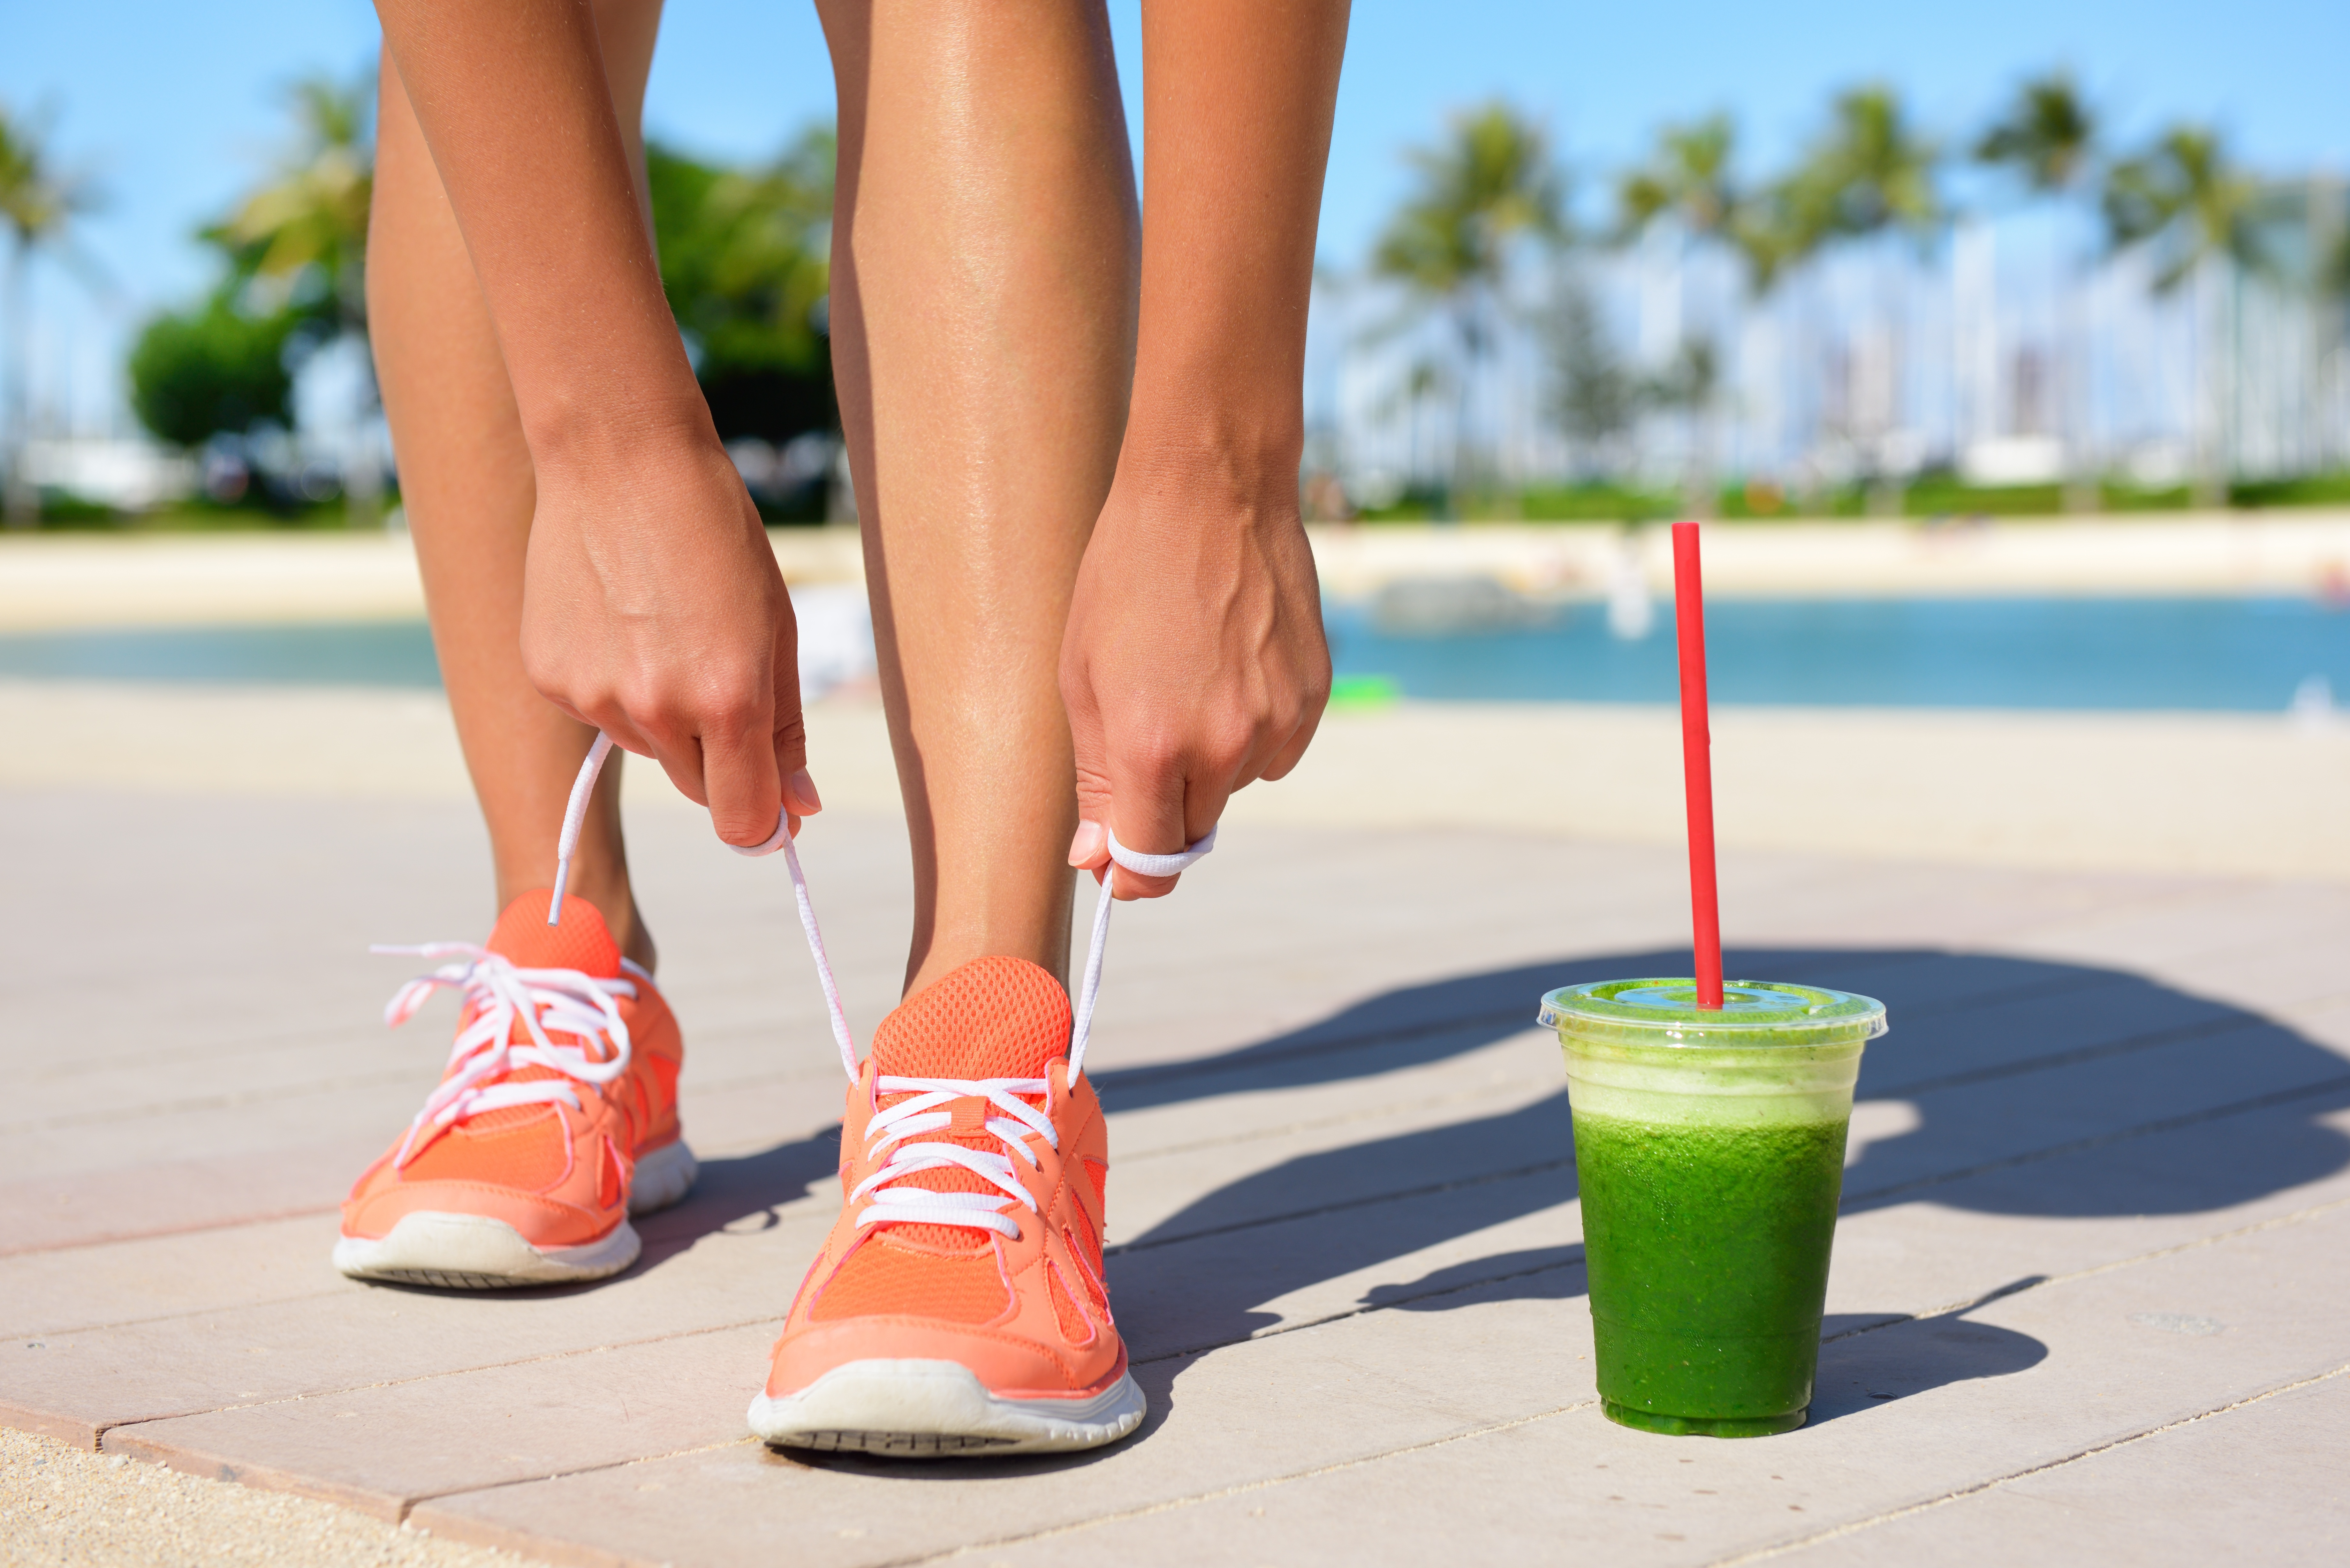 Girl jogging with a green smoothie